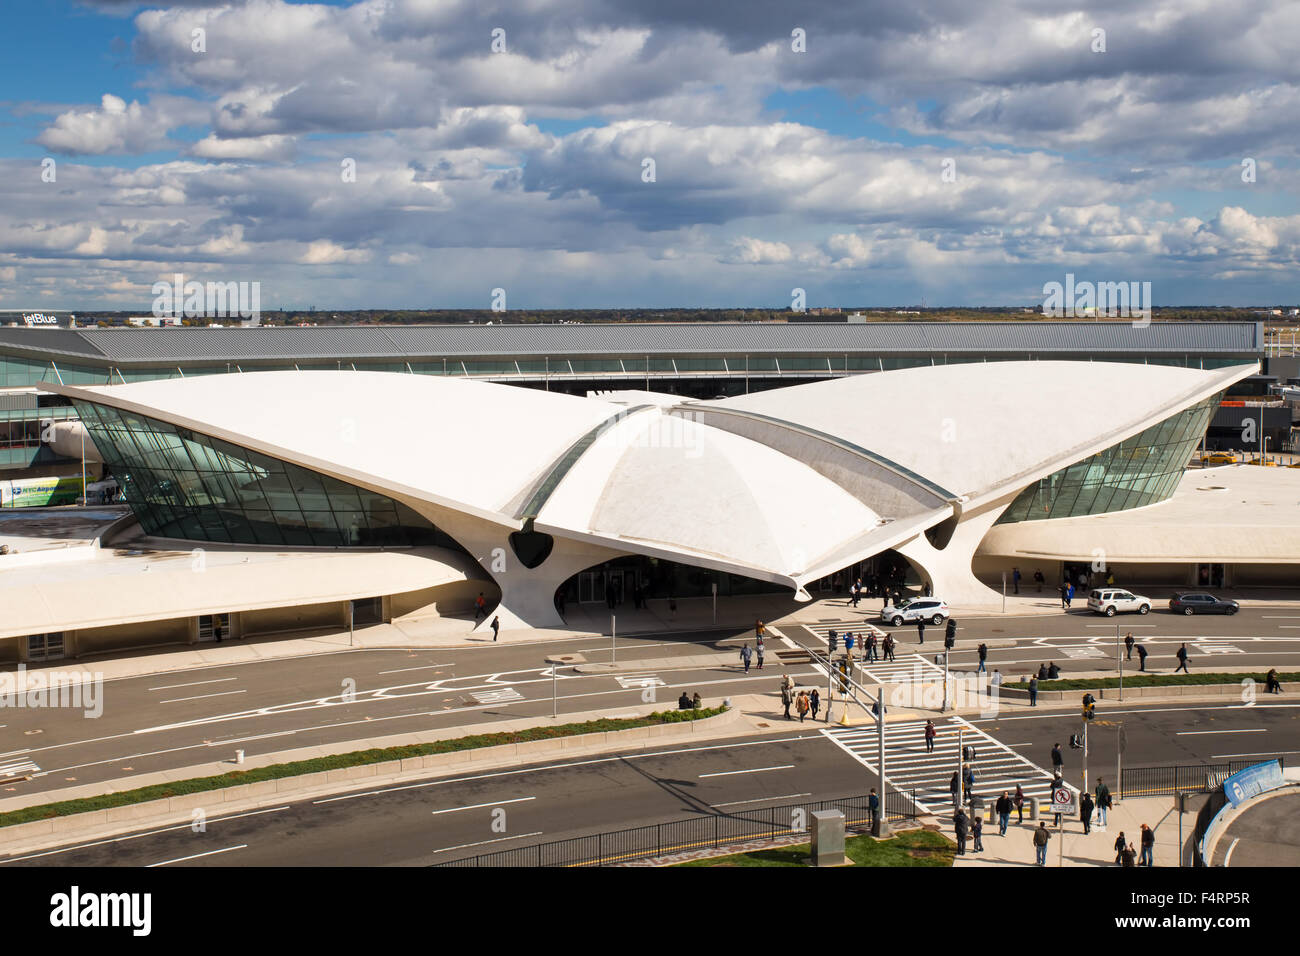 NEW YORK CITY - OCTOBER 18, 2015: View of old space-aged style TWA Flight Center building at John F. Kennedy International - Stock Image